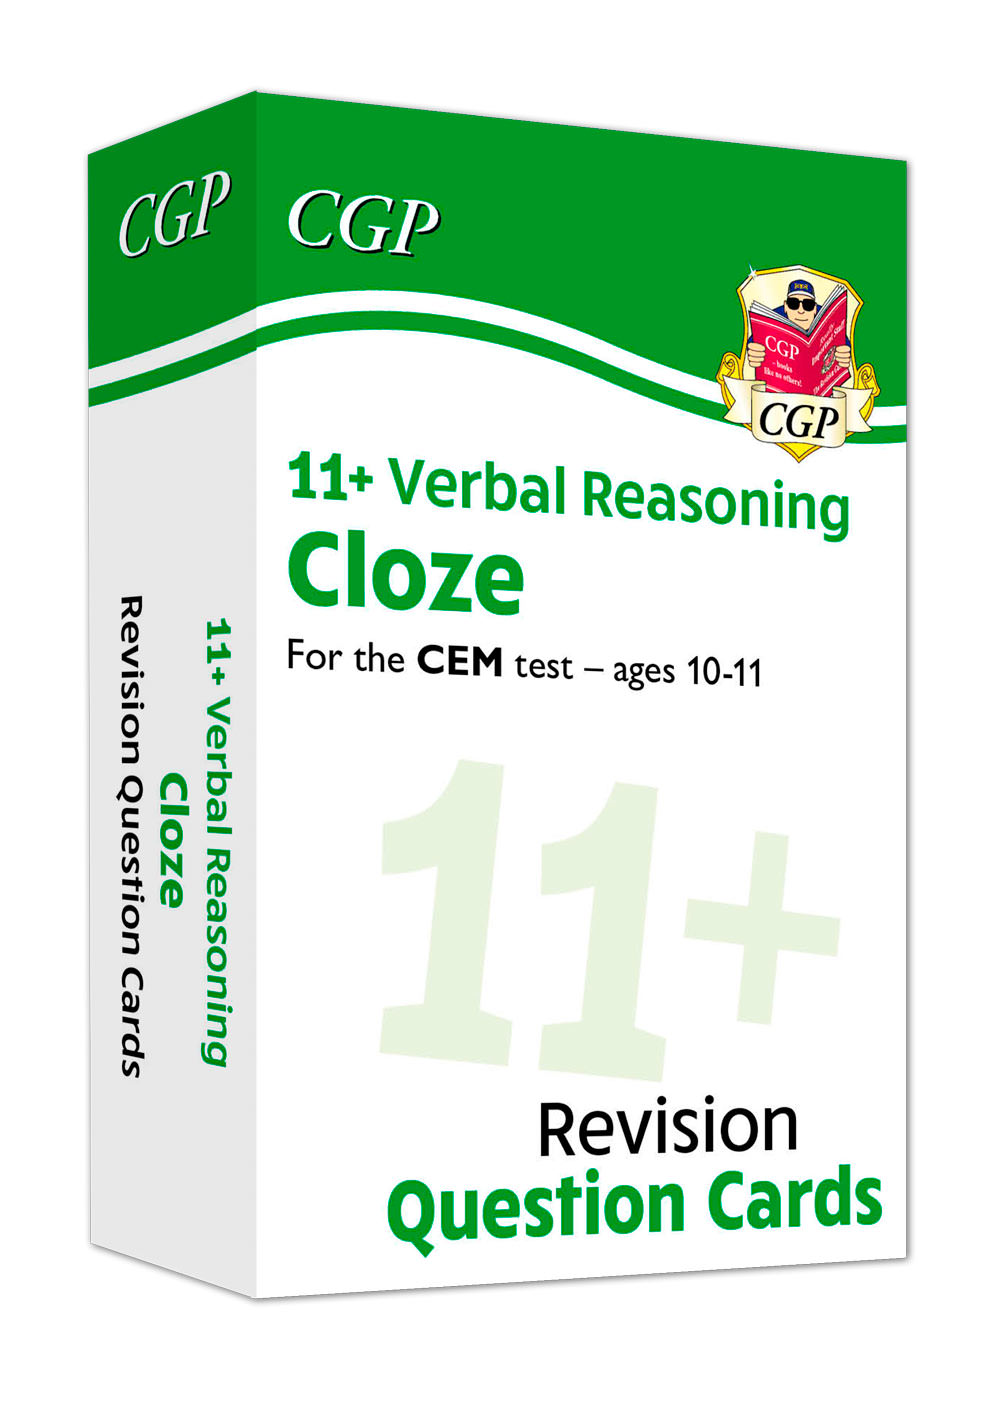 VLFDE1 - New 11+ CEM Revision Question Cards: Verbal Reasoning Cloze - Ages 10-11